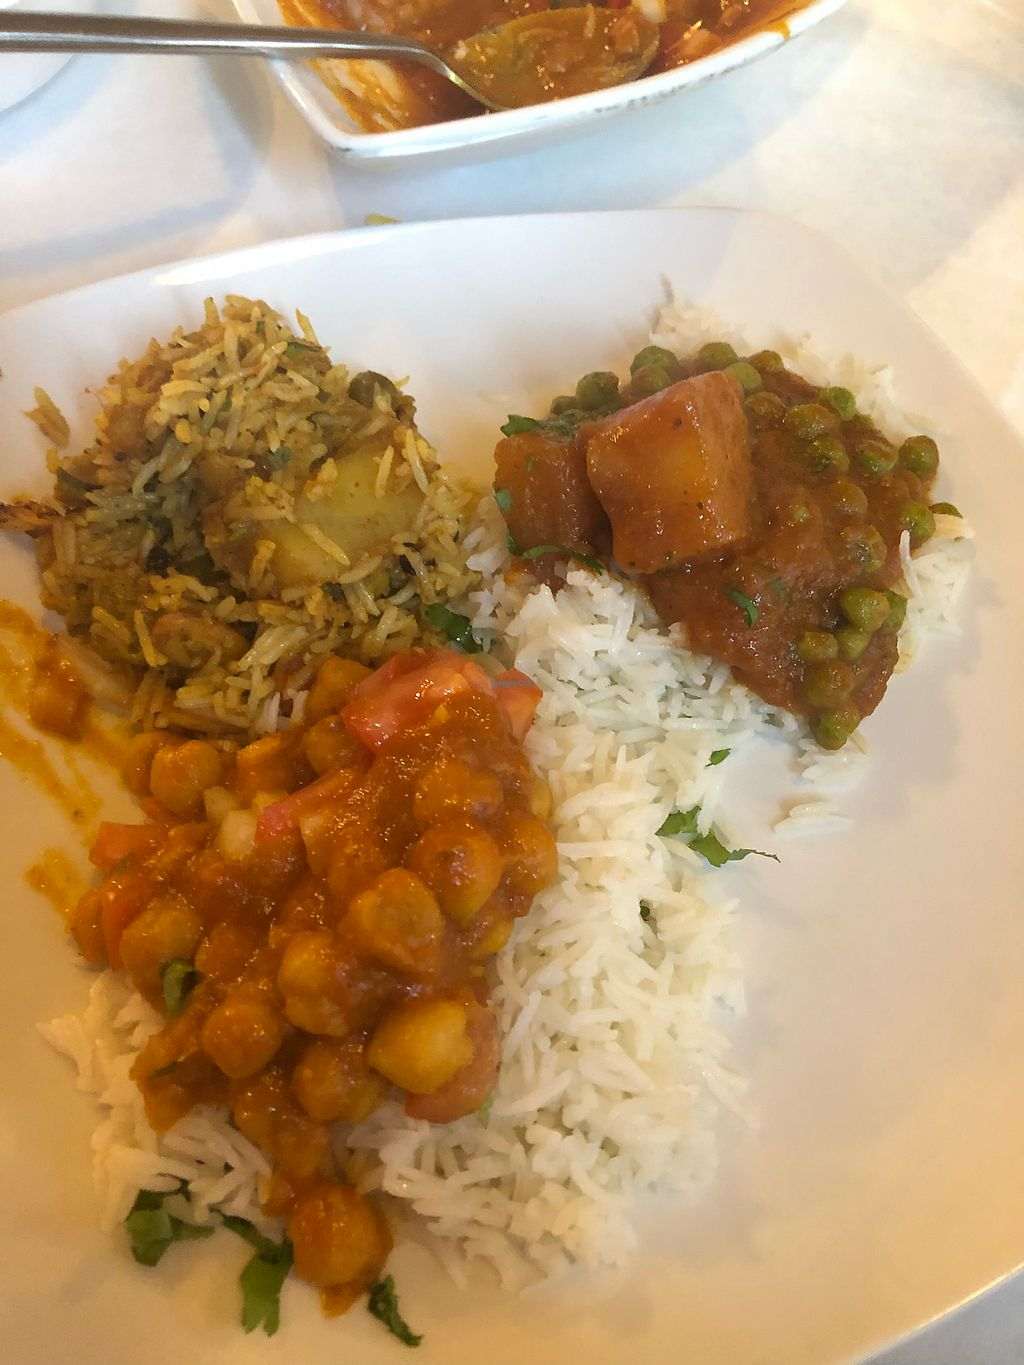 "Photo of Shahi Palace  by <a href=""/members/profile/Jadediana"">Jadediana</a> <br/>Vegetable Biryani (Left) , Alu Mater, and Chana Masala at the bottom  <br/> April 7, 2018  - <a href='/contact/abuse/image/115816/382153'>Report</a>"